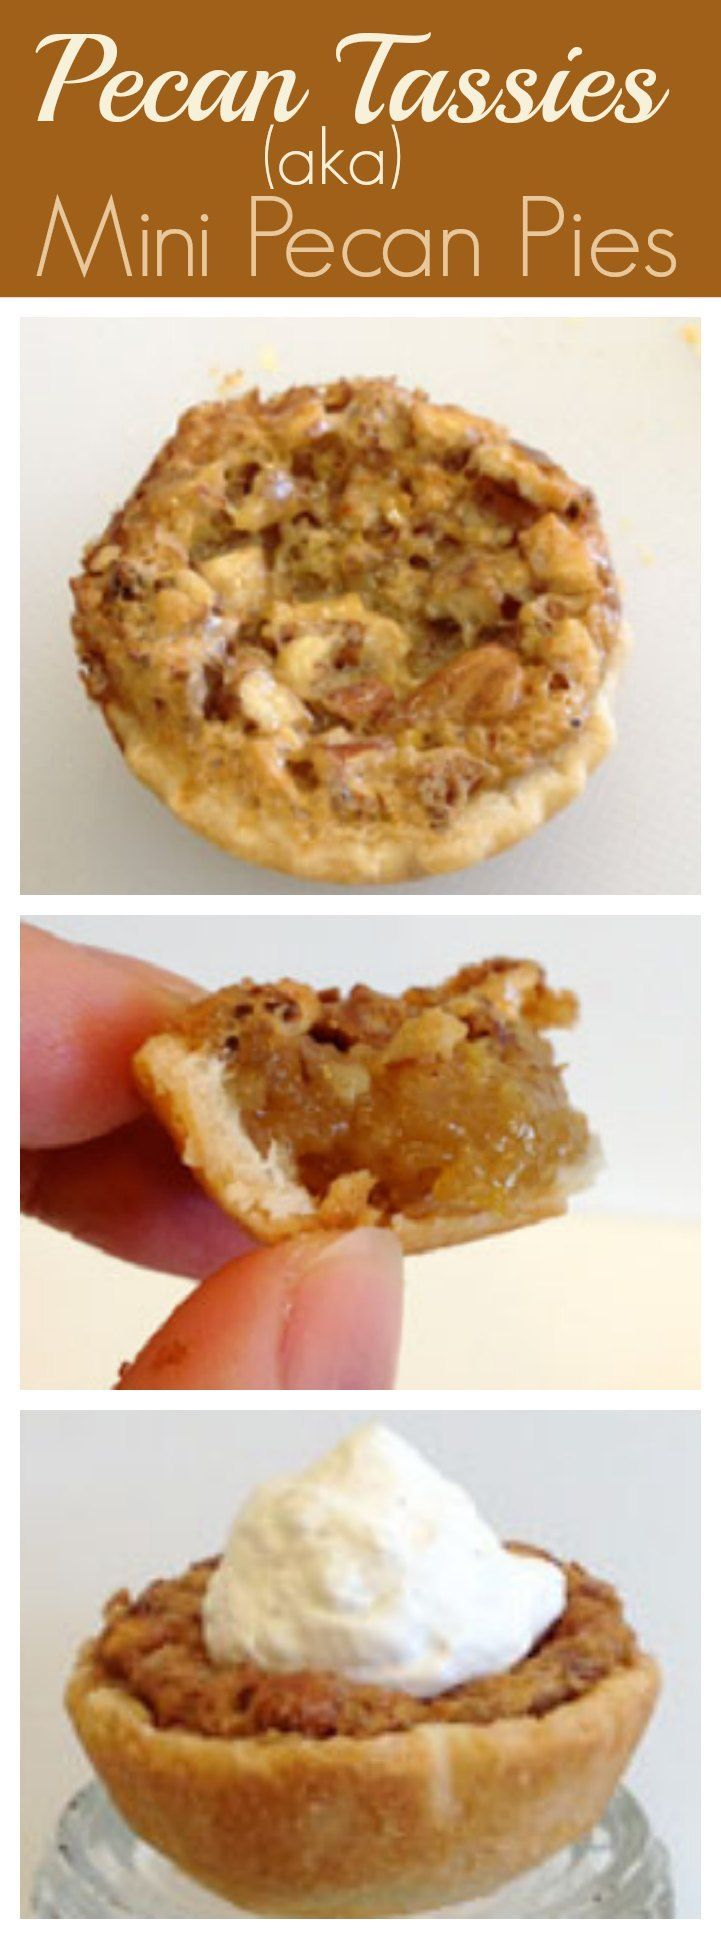 Yum!! Pecan Tassies (aka mini pecan pies) - perfect for the holiday dessert table!